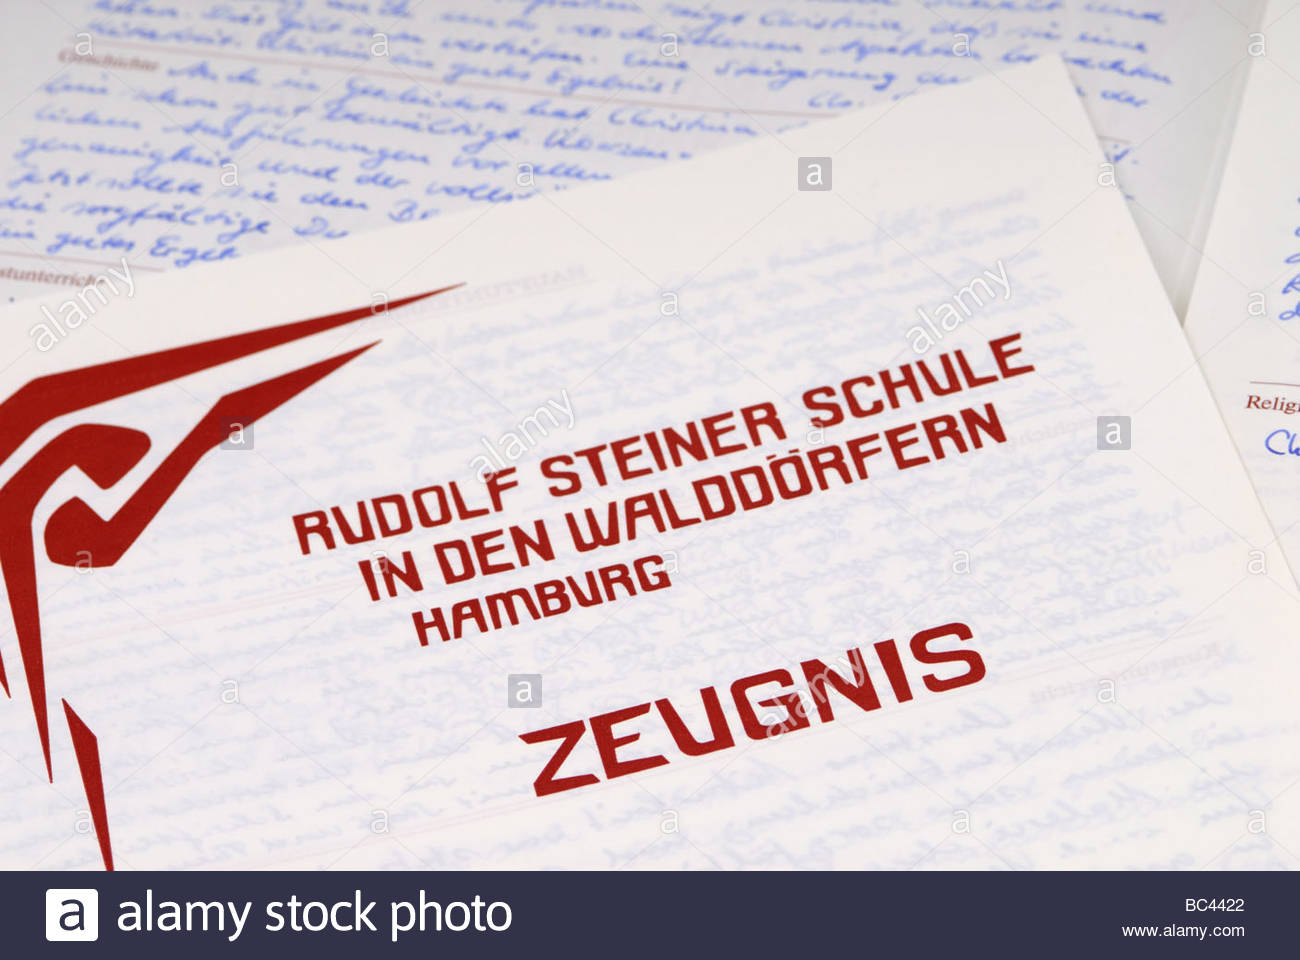 Zeugnis stock photos zeugnis stock images alamy zeugnis waldorfschule stock image spiritdancerdesigns Gallery